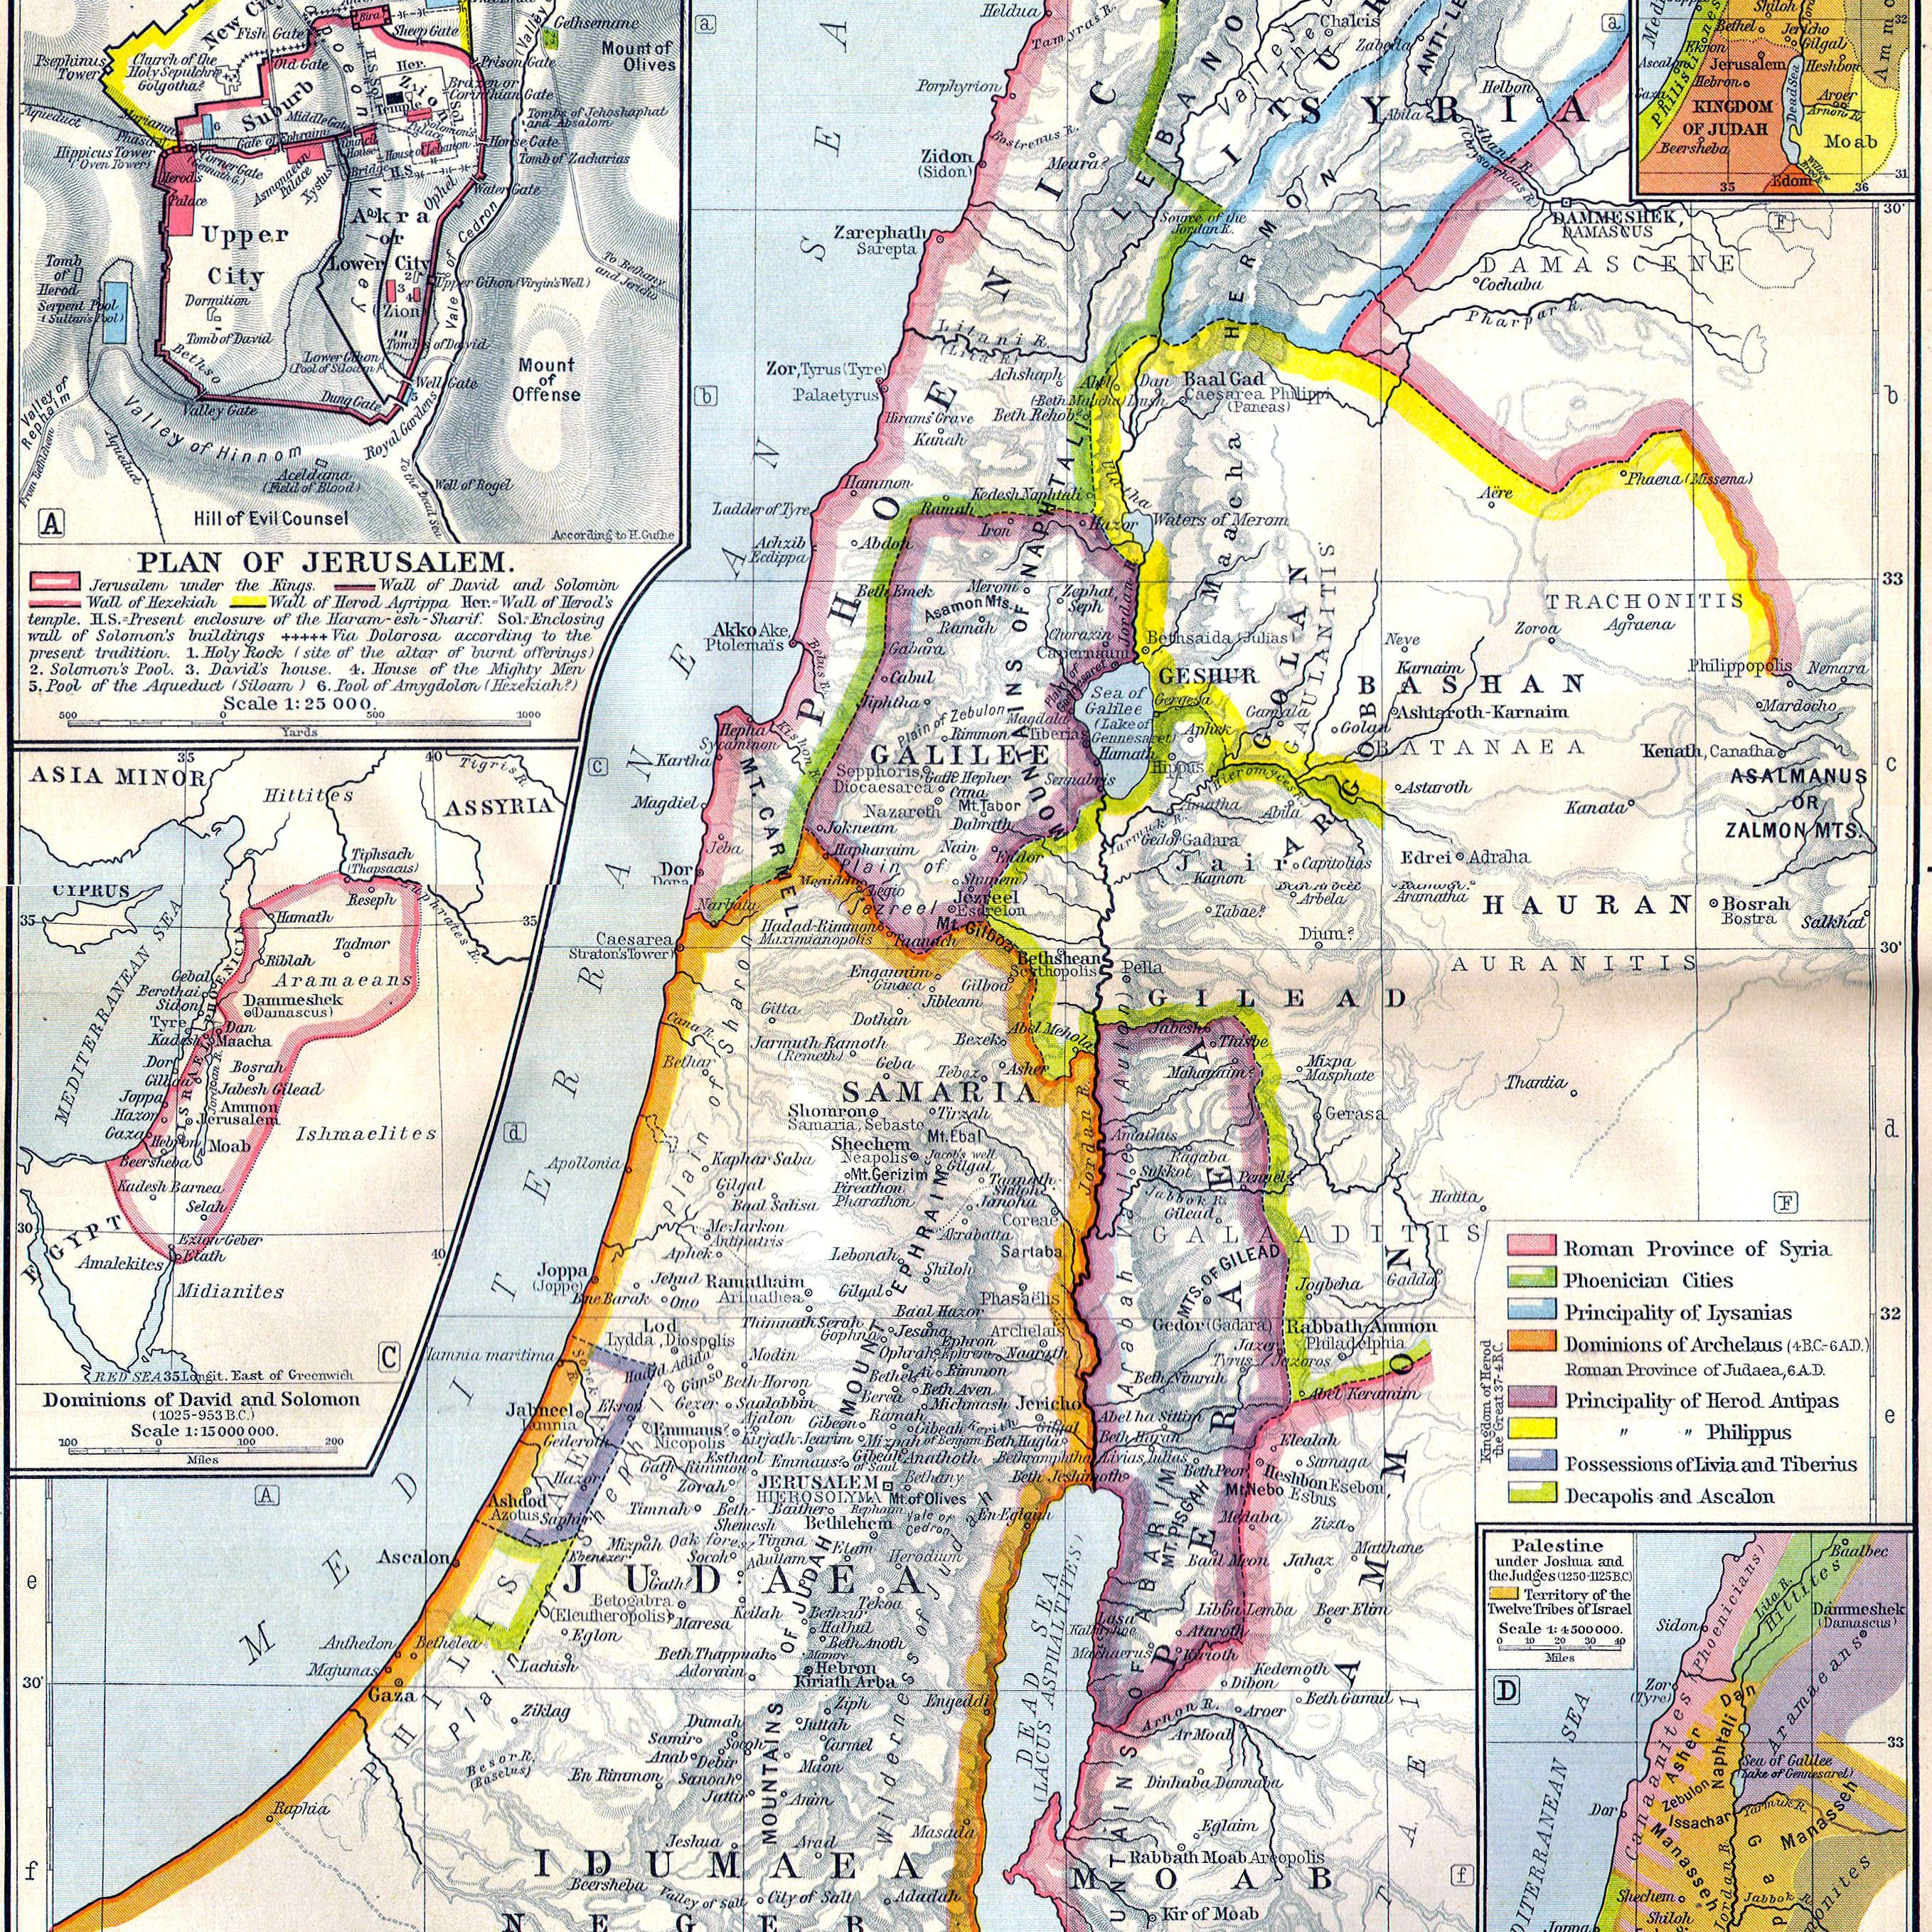 Map of ancient Palestine with insets showing Jerusalem and the dominions of the David, Solomon, Joshua and the Judges